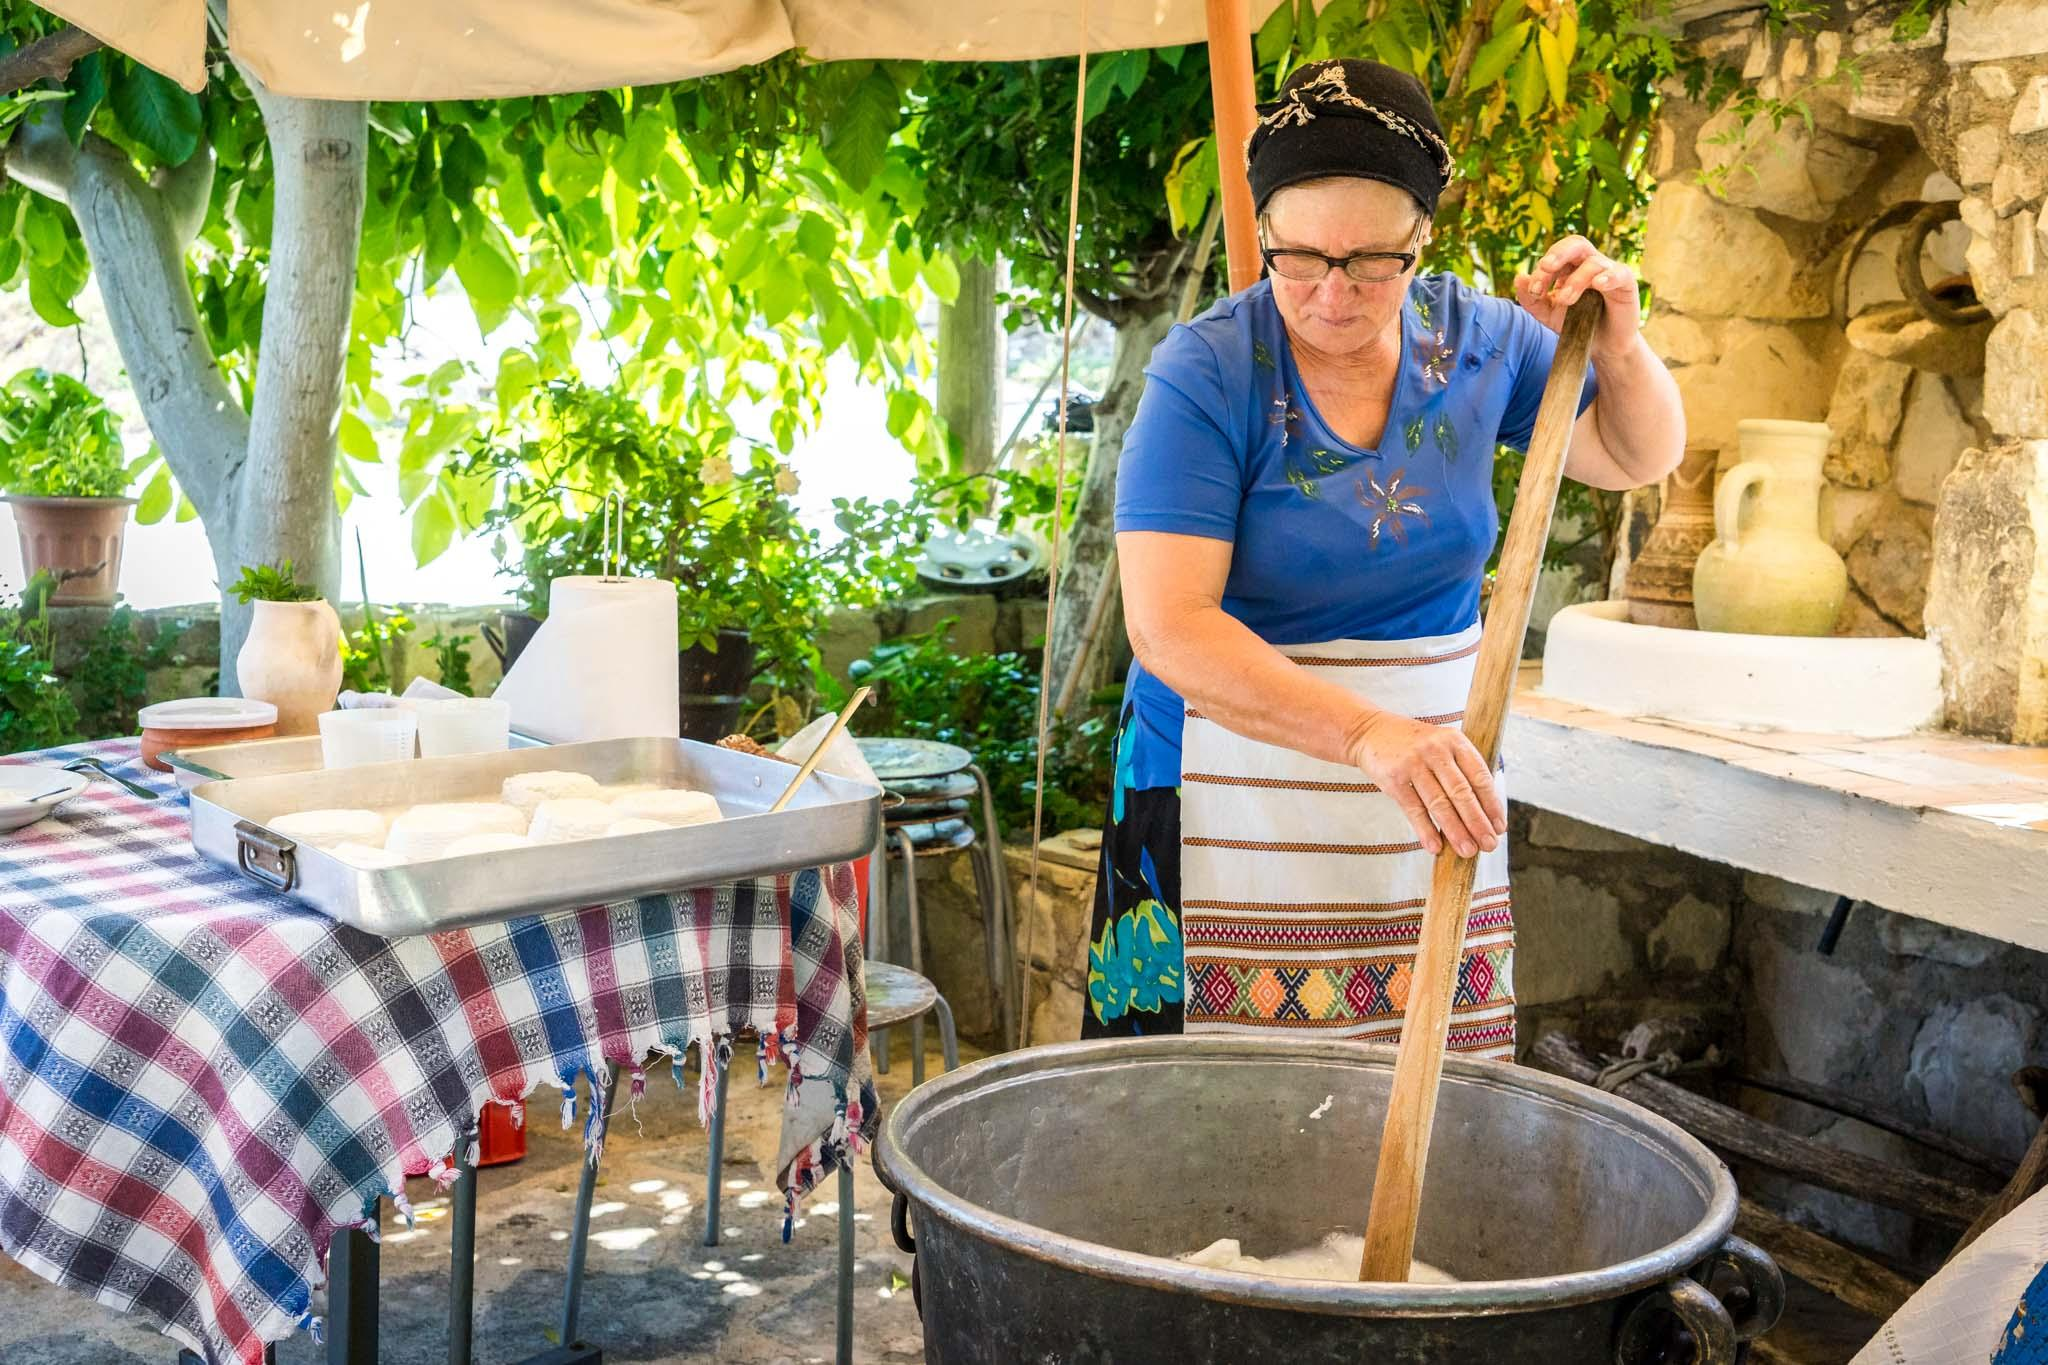 Local cheesemakers in the hills around Pafos are able to cook halloumi in their own homes. – © Michael Turtle